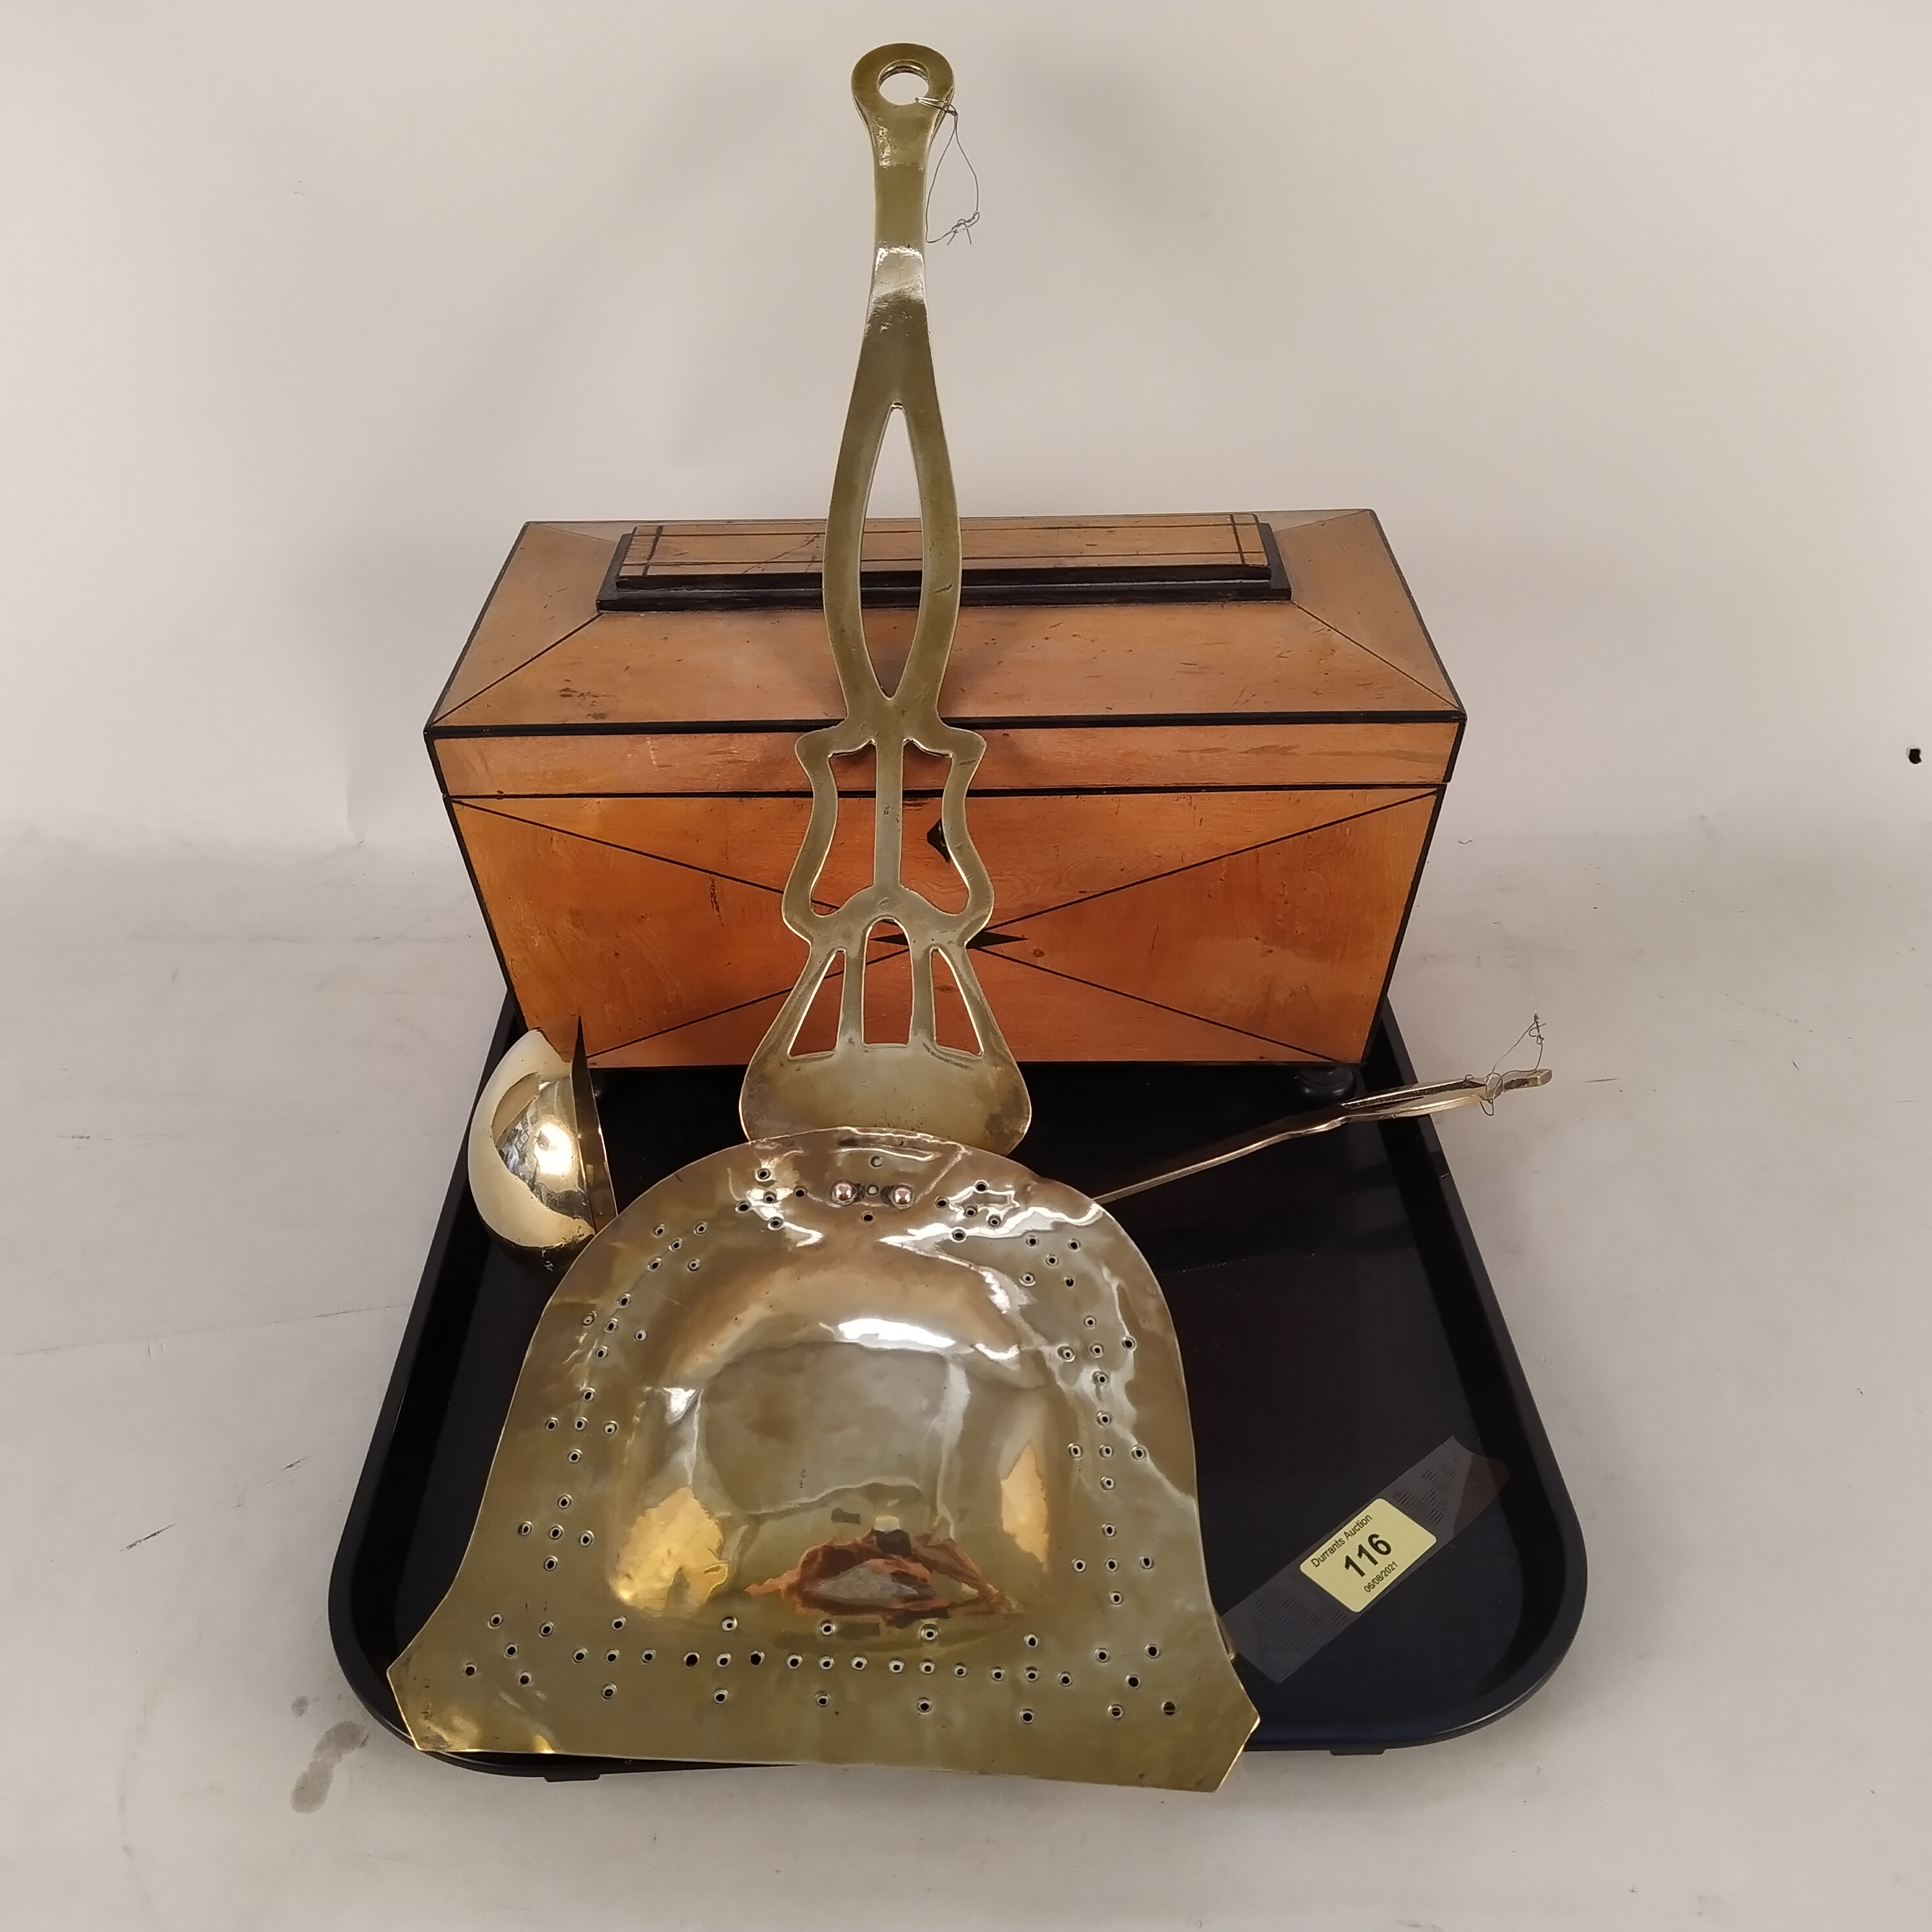 An antique satinwood tea caddy with void interior plus a Victorian brass chestnut roaster and ladle